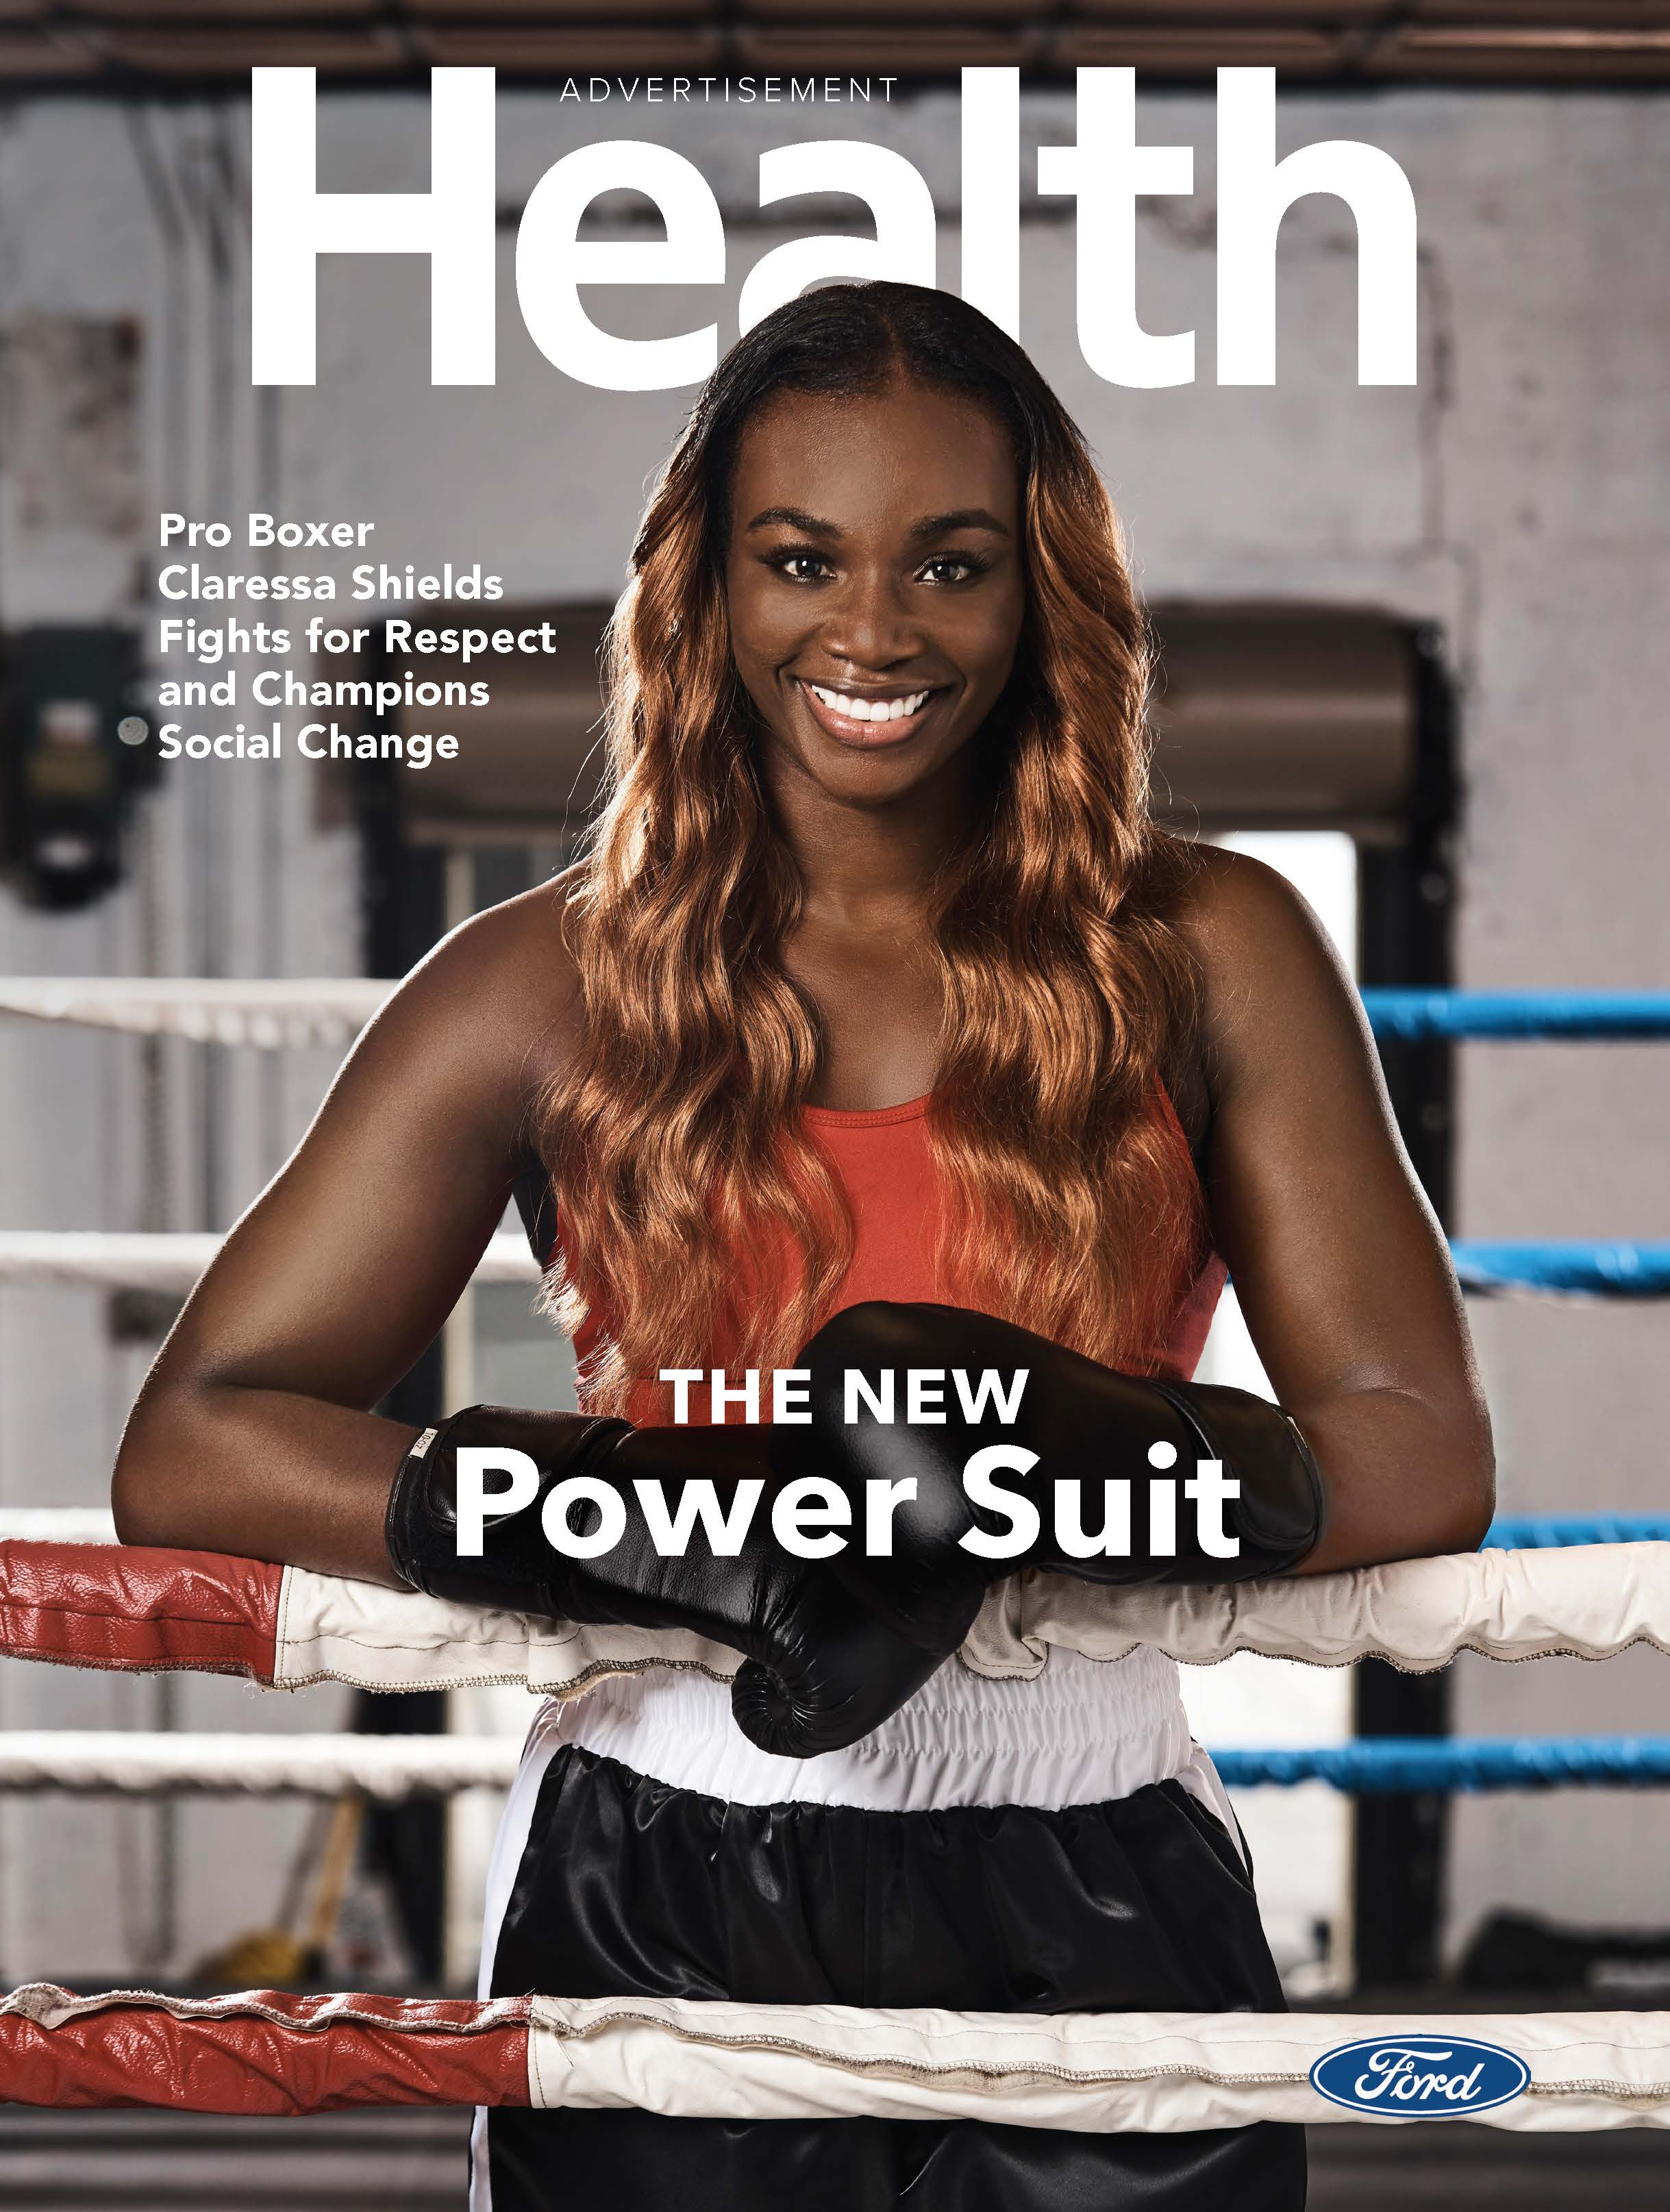 002_FORD_Health_ClaressaShields_FINAL_digital-final